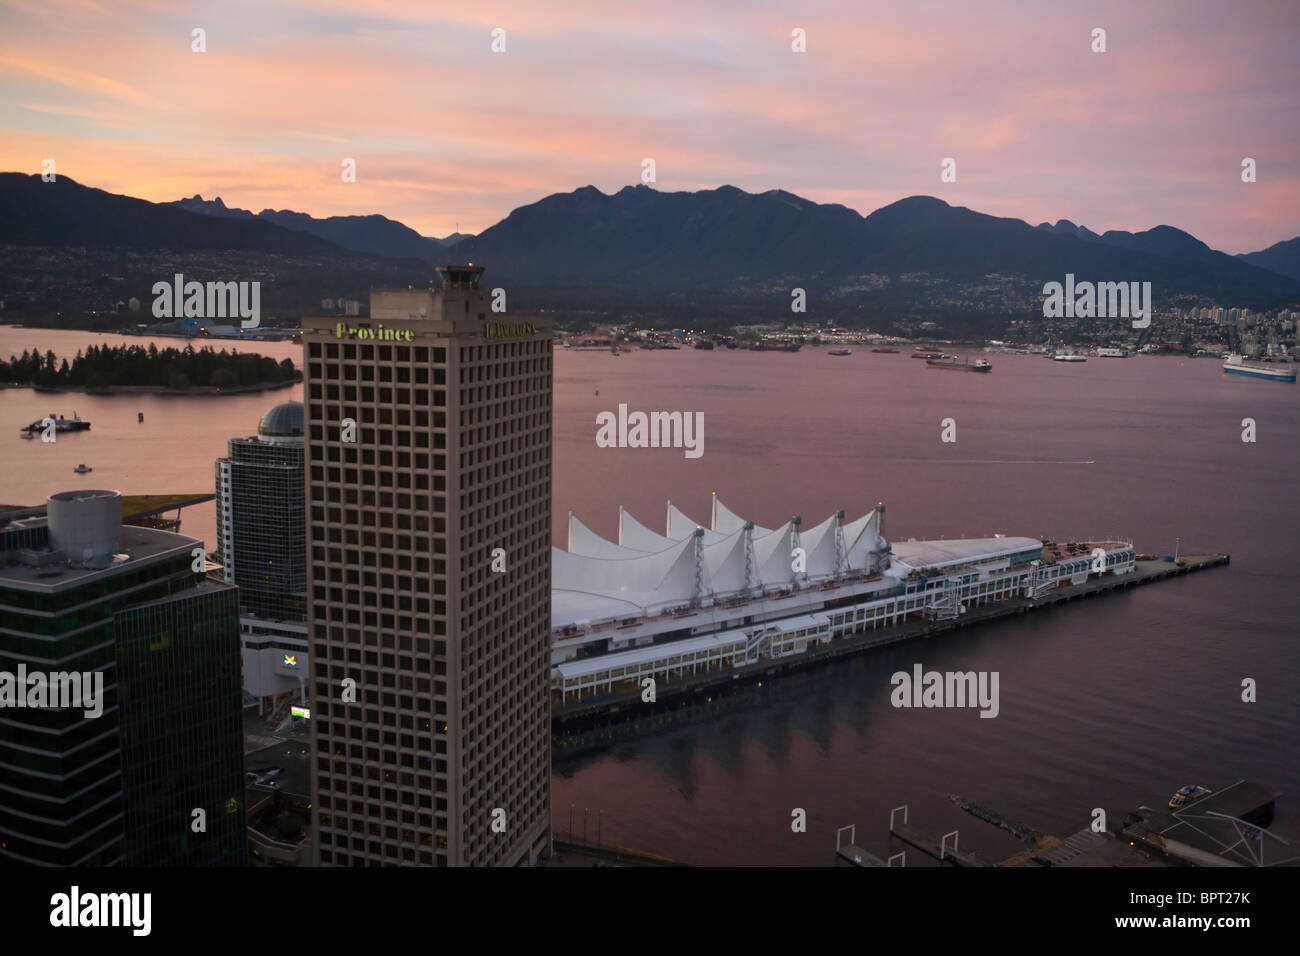 Aerial view of Canada Place at sunset, Vancouver, British Columbia, Canada - Stock Image